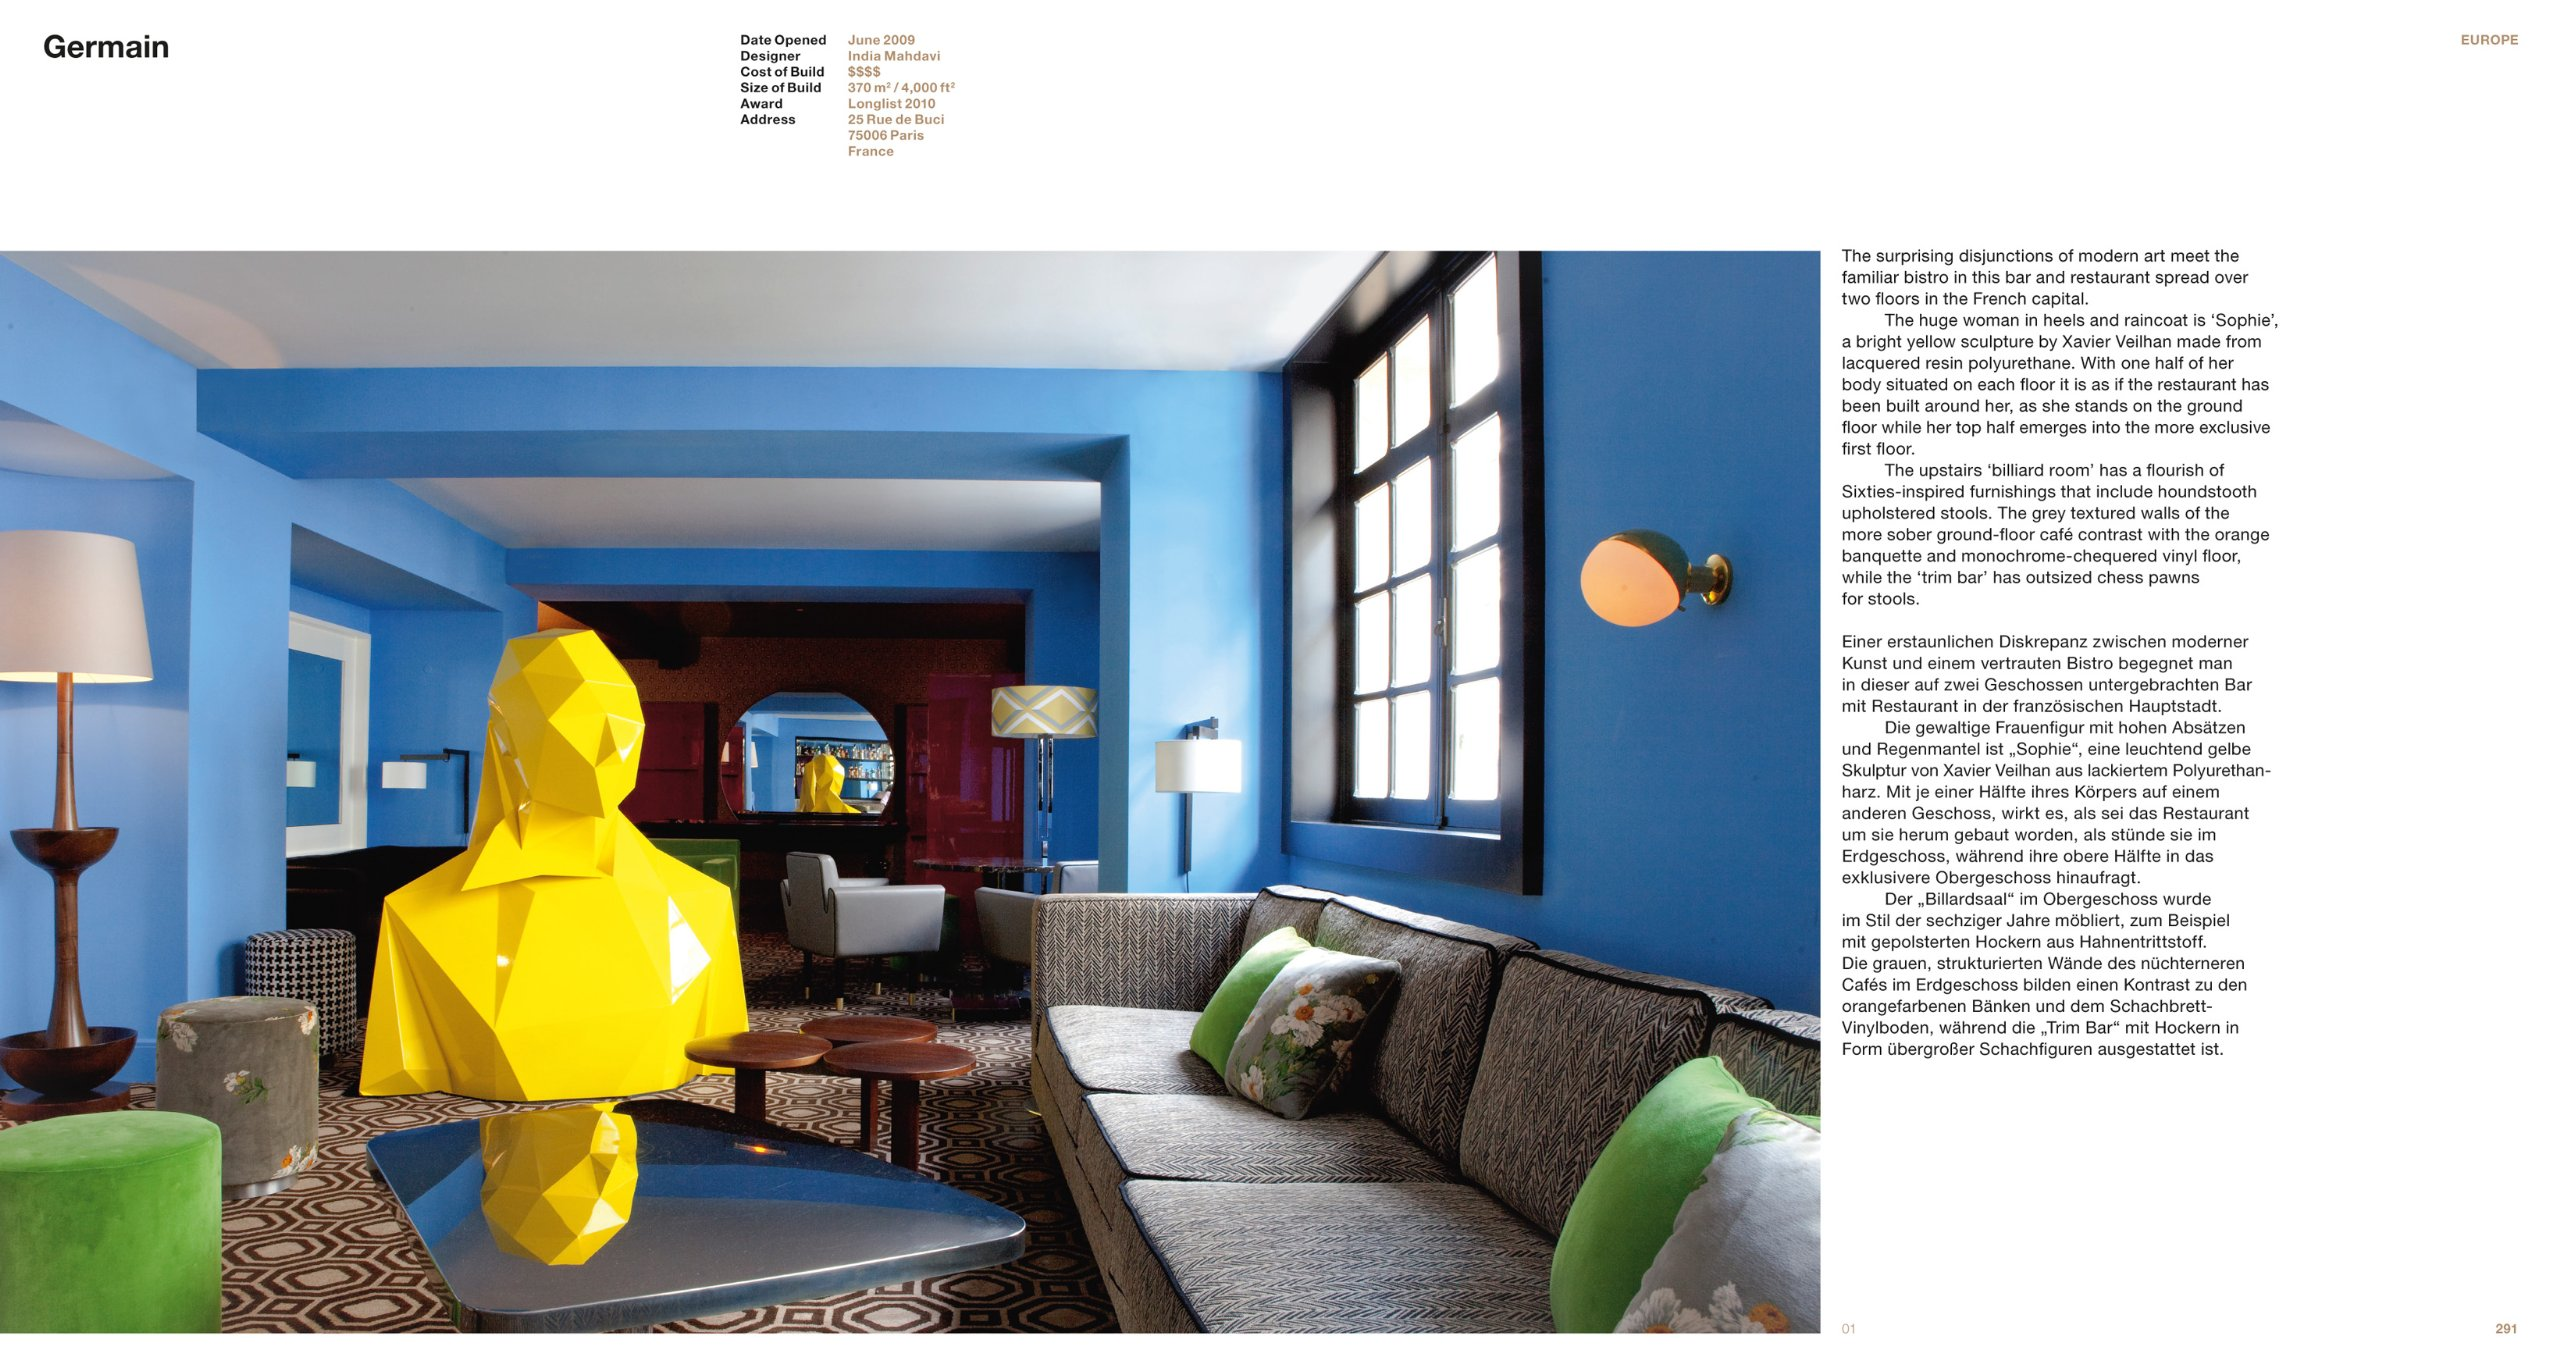 Germain In Paris France Opened 2009 Award Long List 2010 Design India Mahdavi